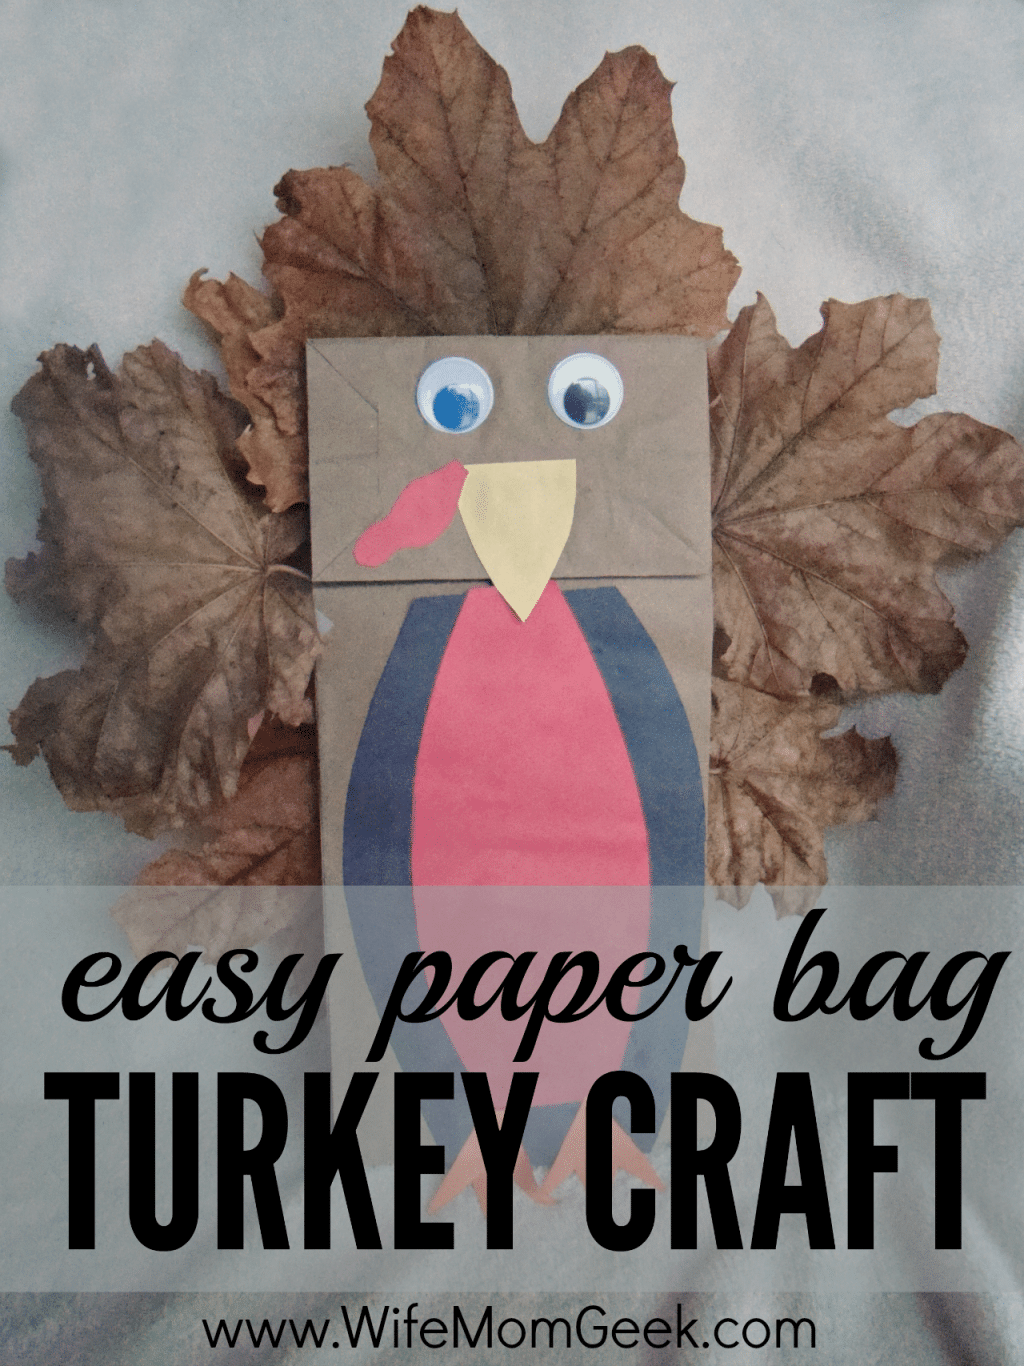 Easy Paper Bag Turkey Craft